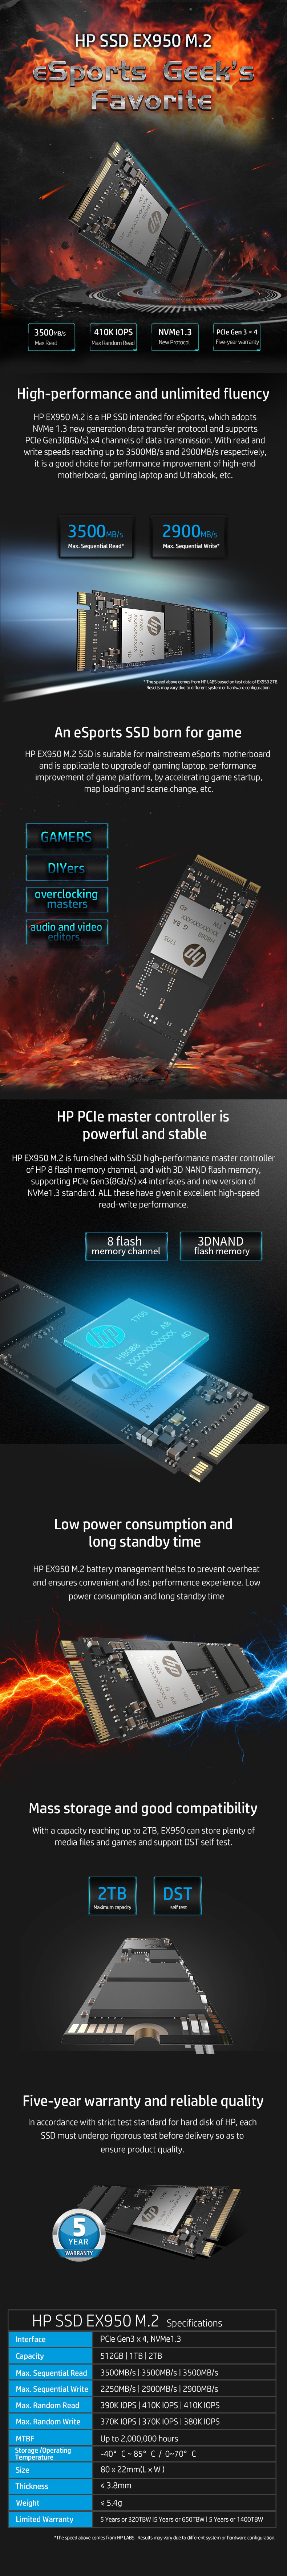 HP 5MS24AA#ABC EX950 2TB M 2 2280 PCIe 3 1 x4 NVMe 3D TLC NAND Internal  Solid State Drive (SSD)